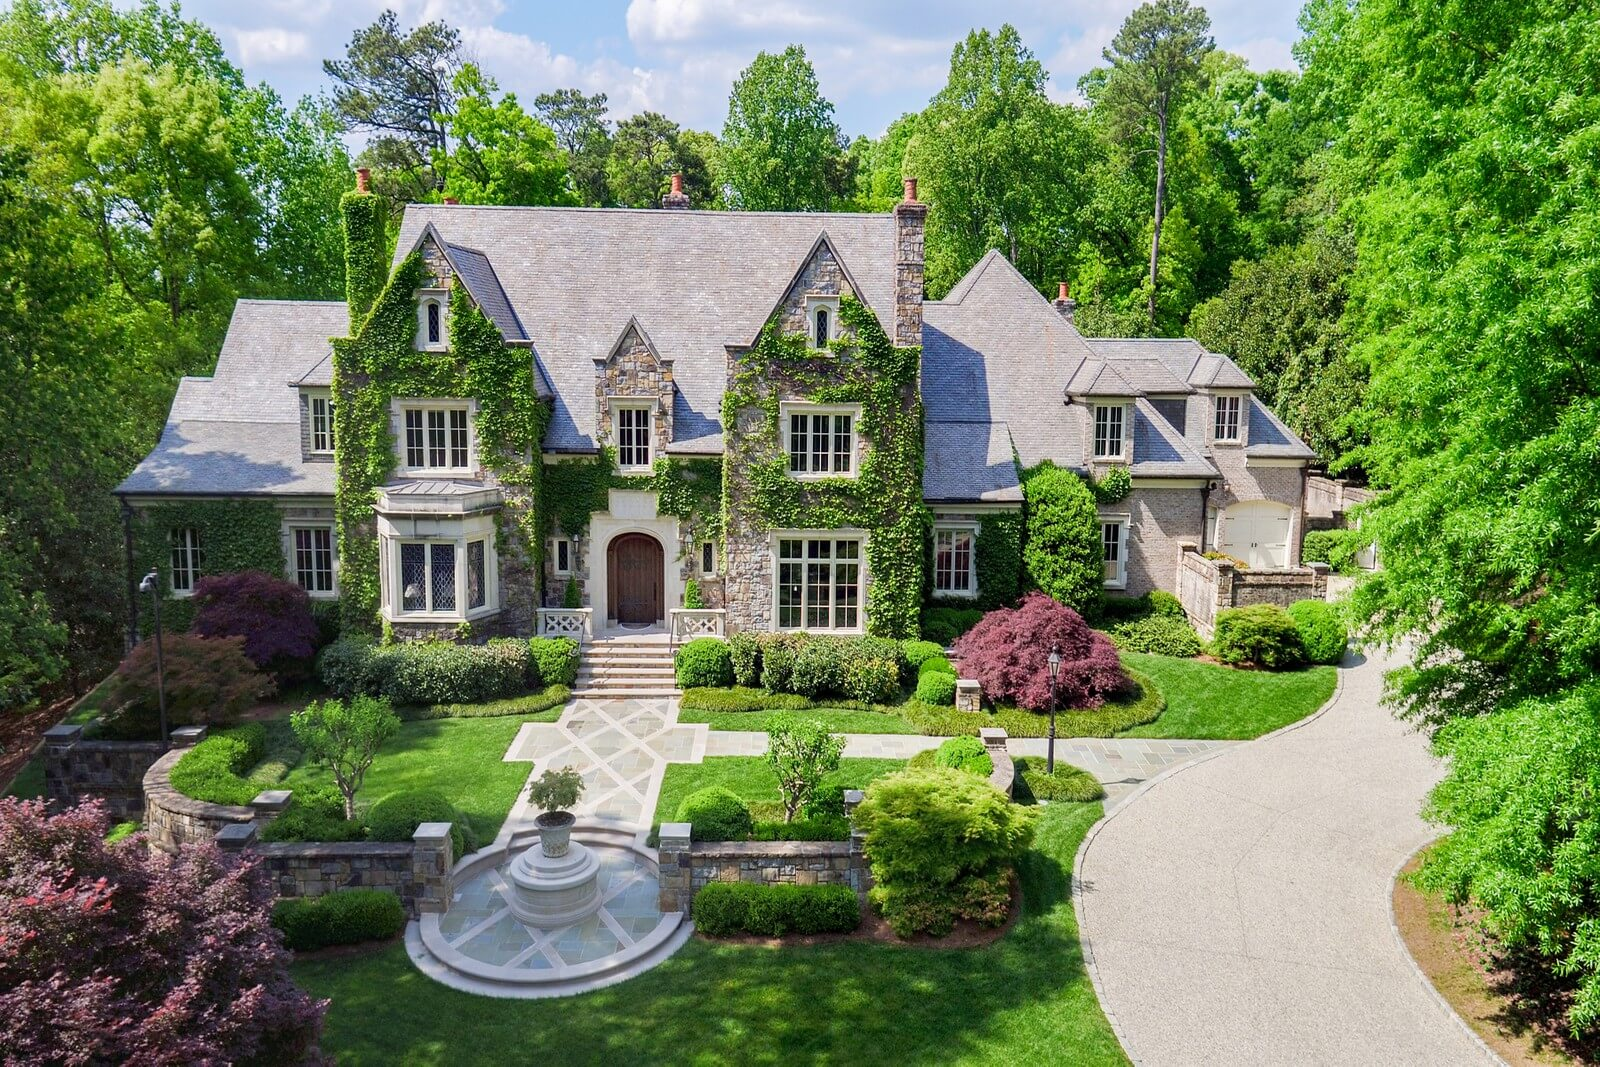 Peek Inside: $5M+ Homes For Sale in The South